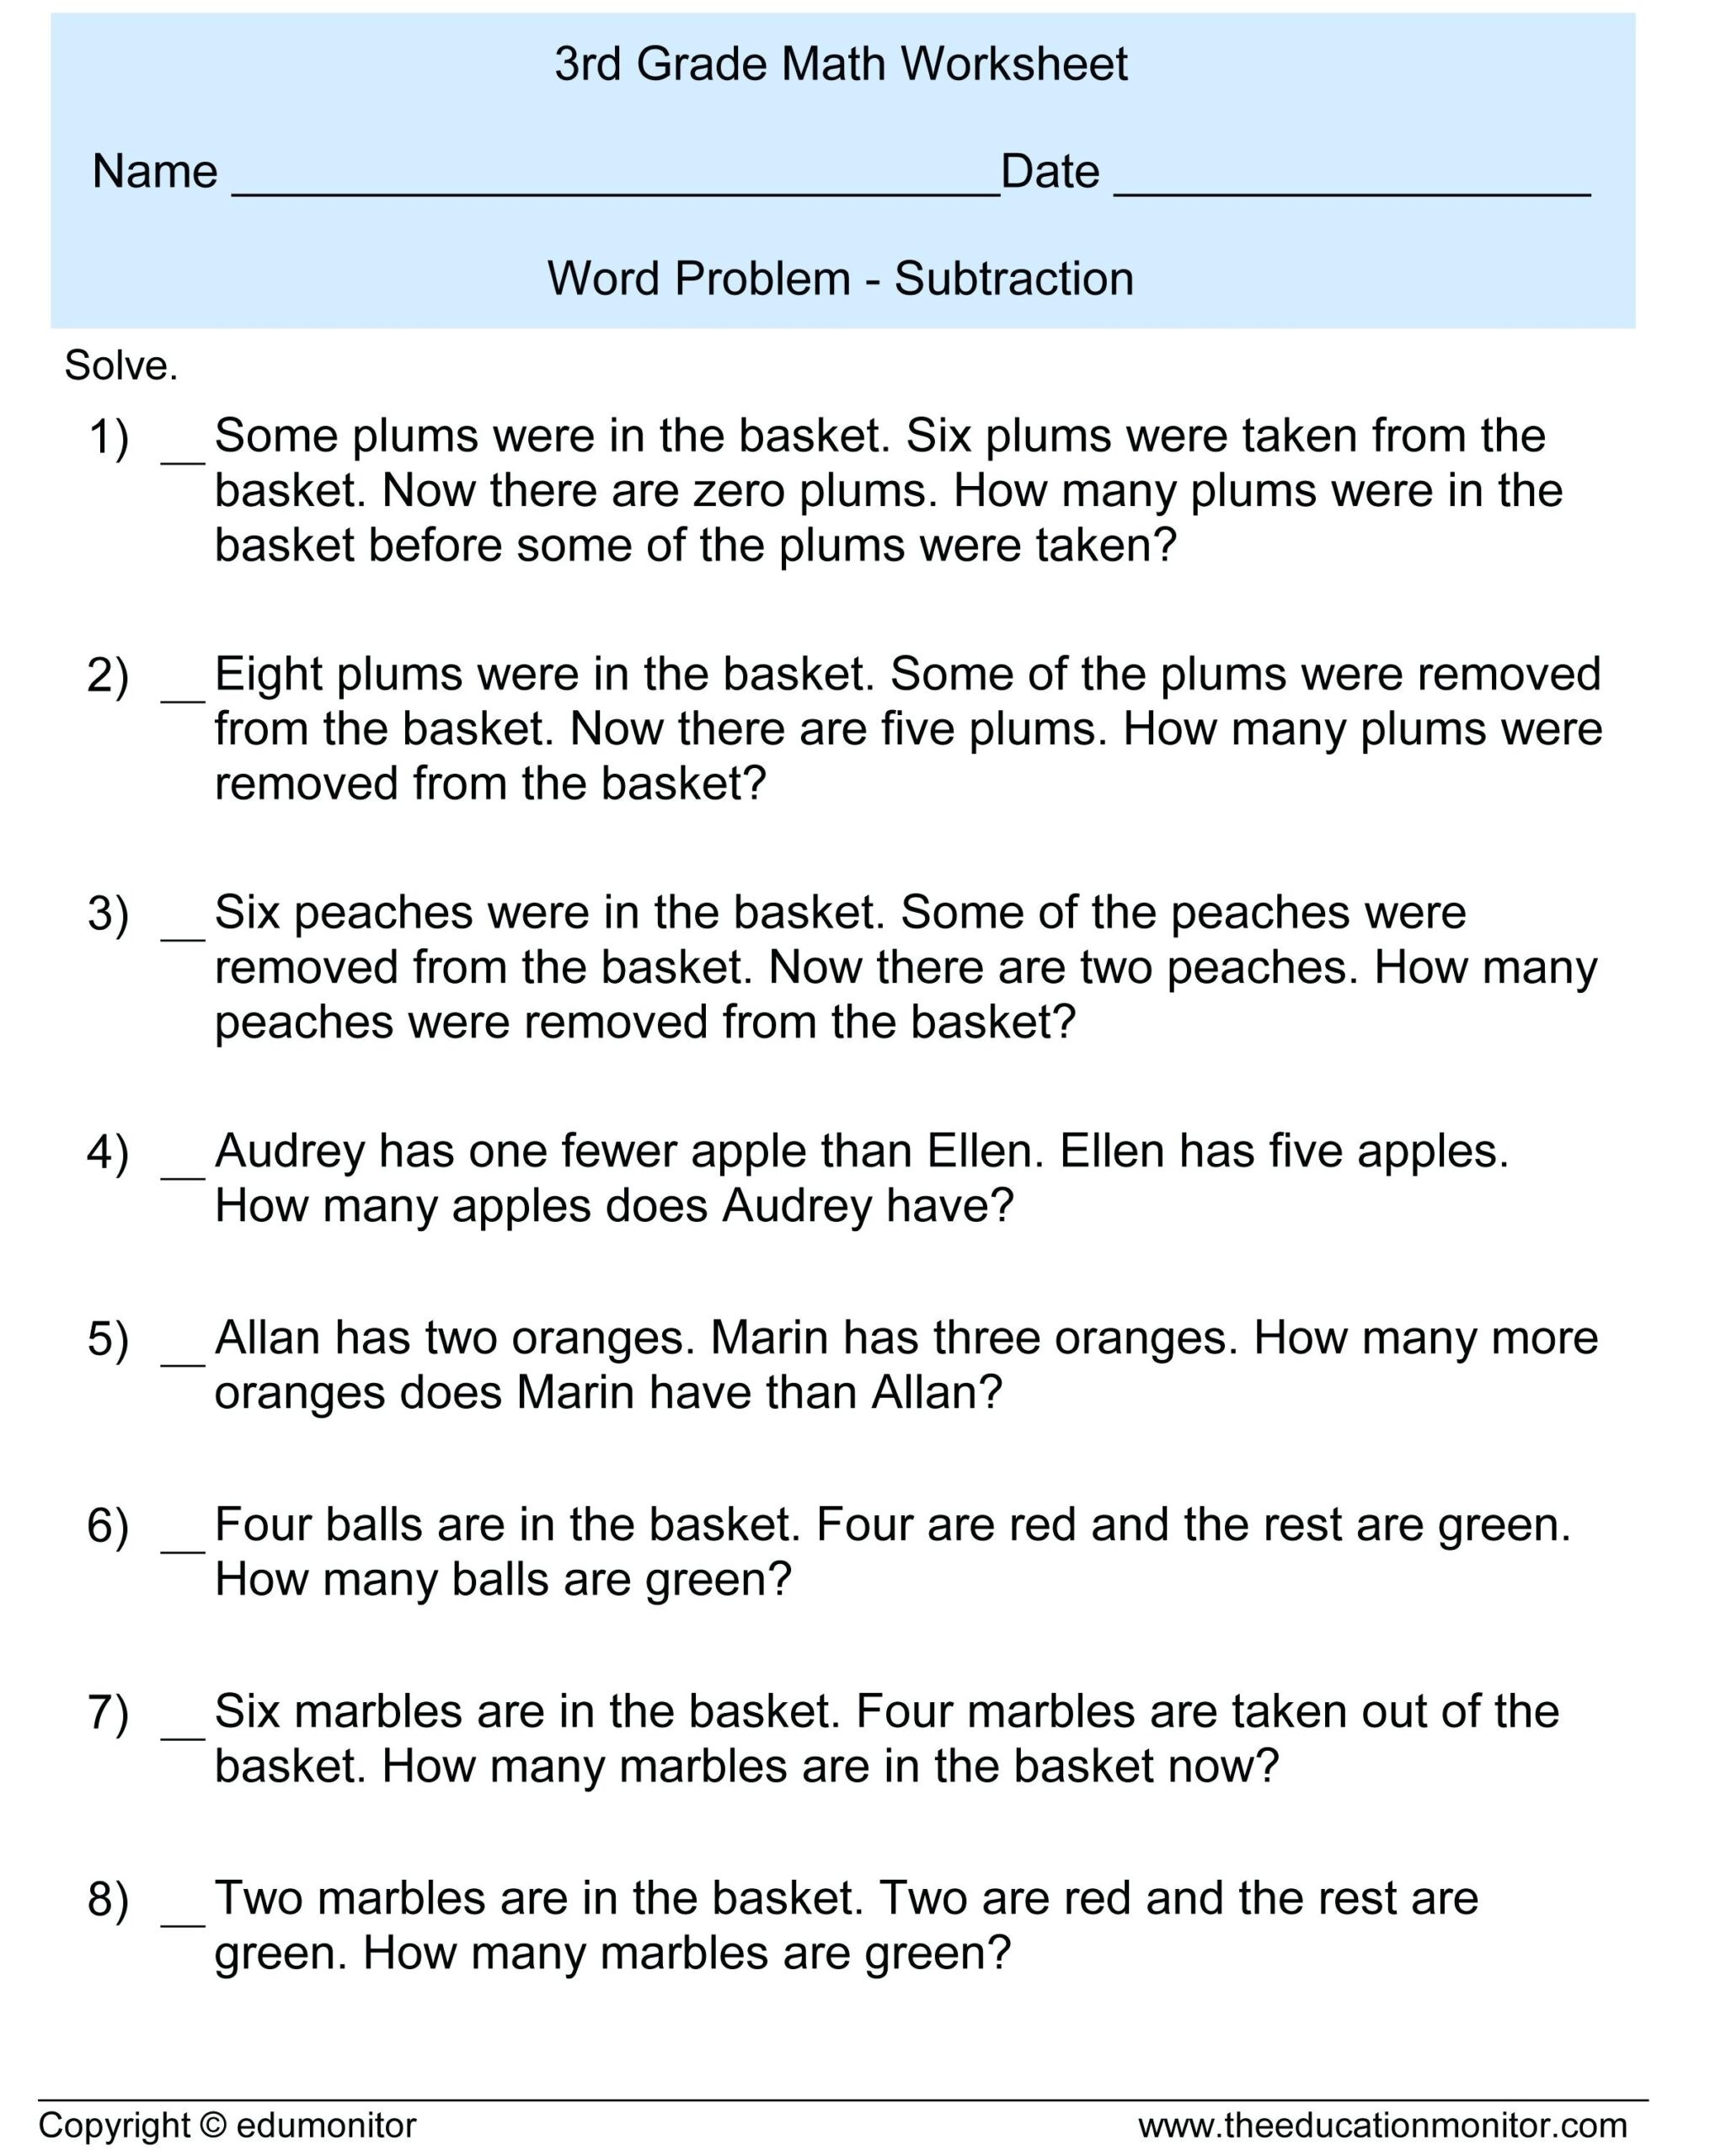 Third Grade Fraction Word Problems 3rd Grade Subtraction Word Problems Free Math Worksheets and